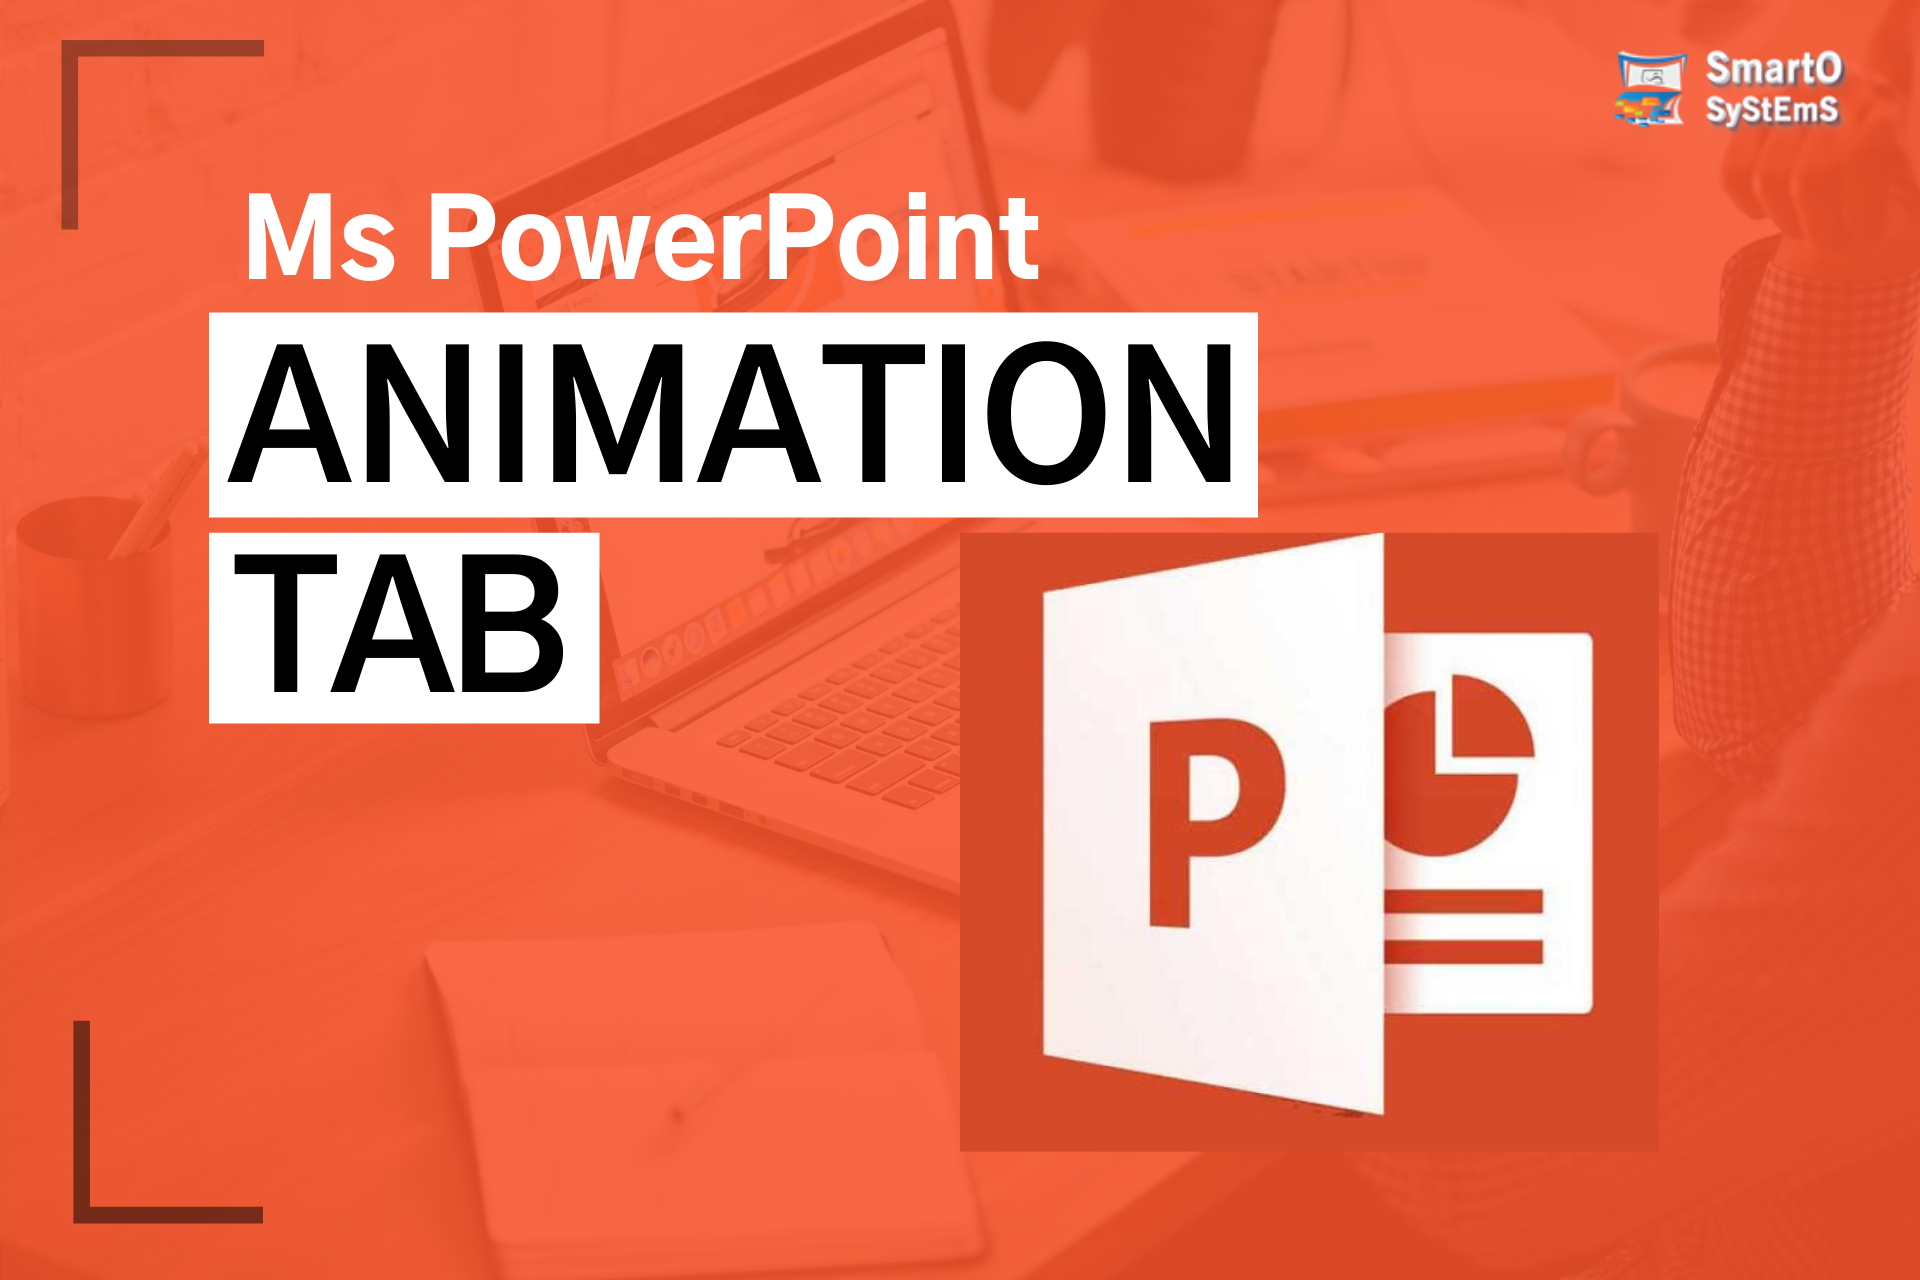 How to use PowerPoint Animation Tab